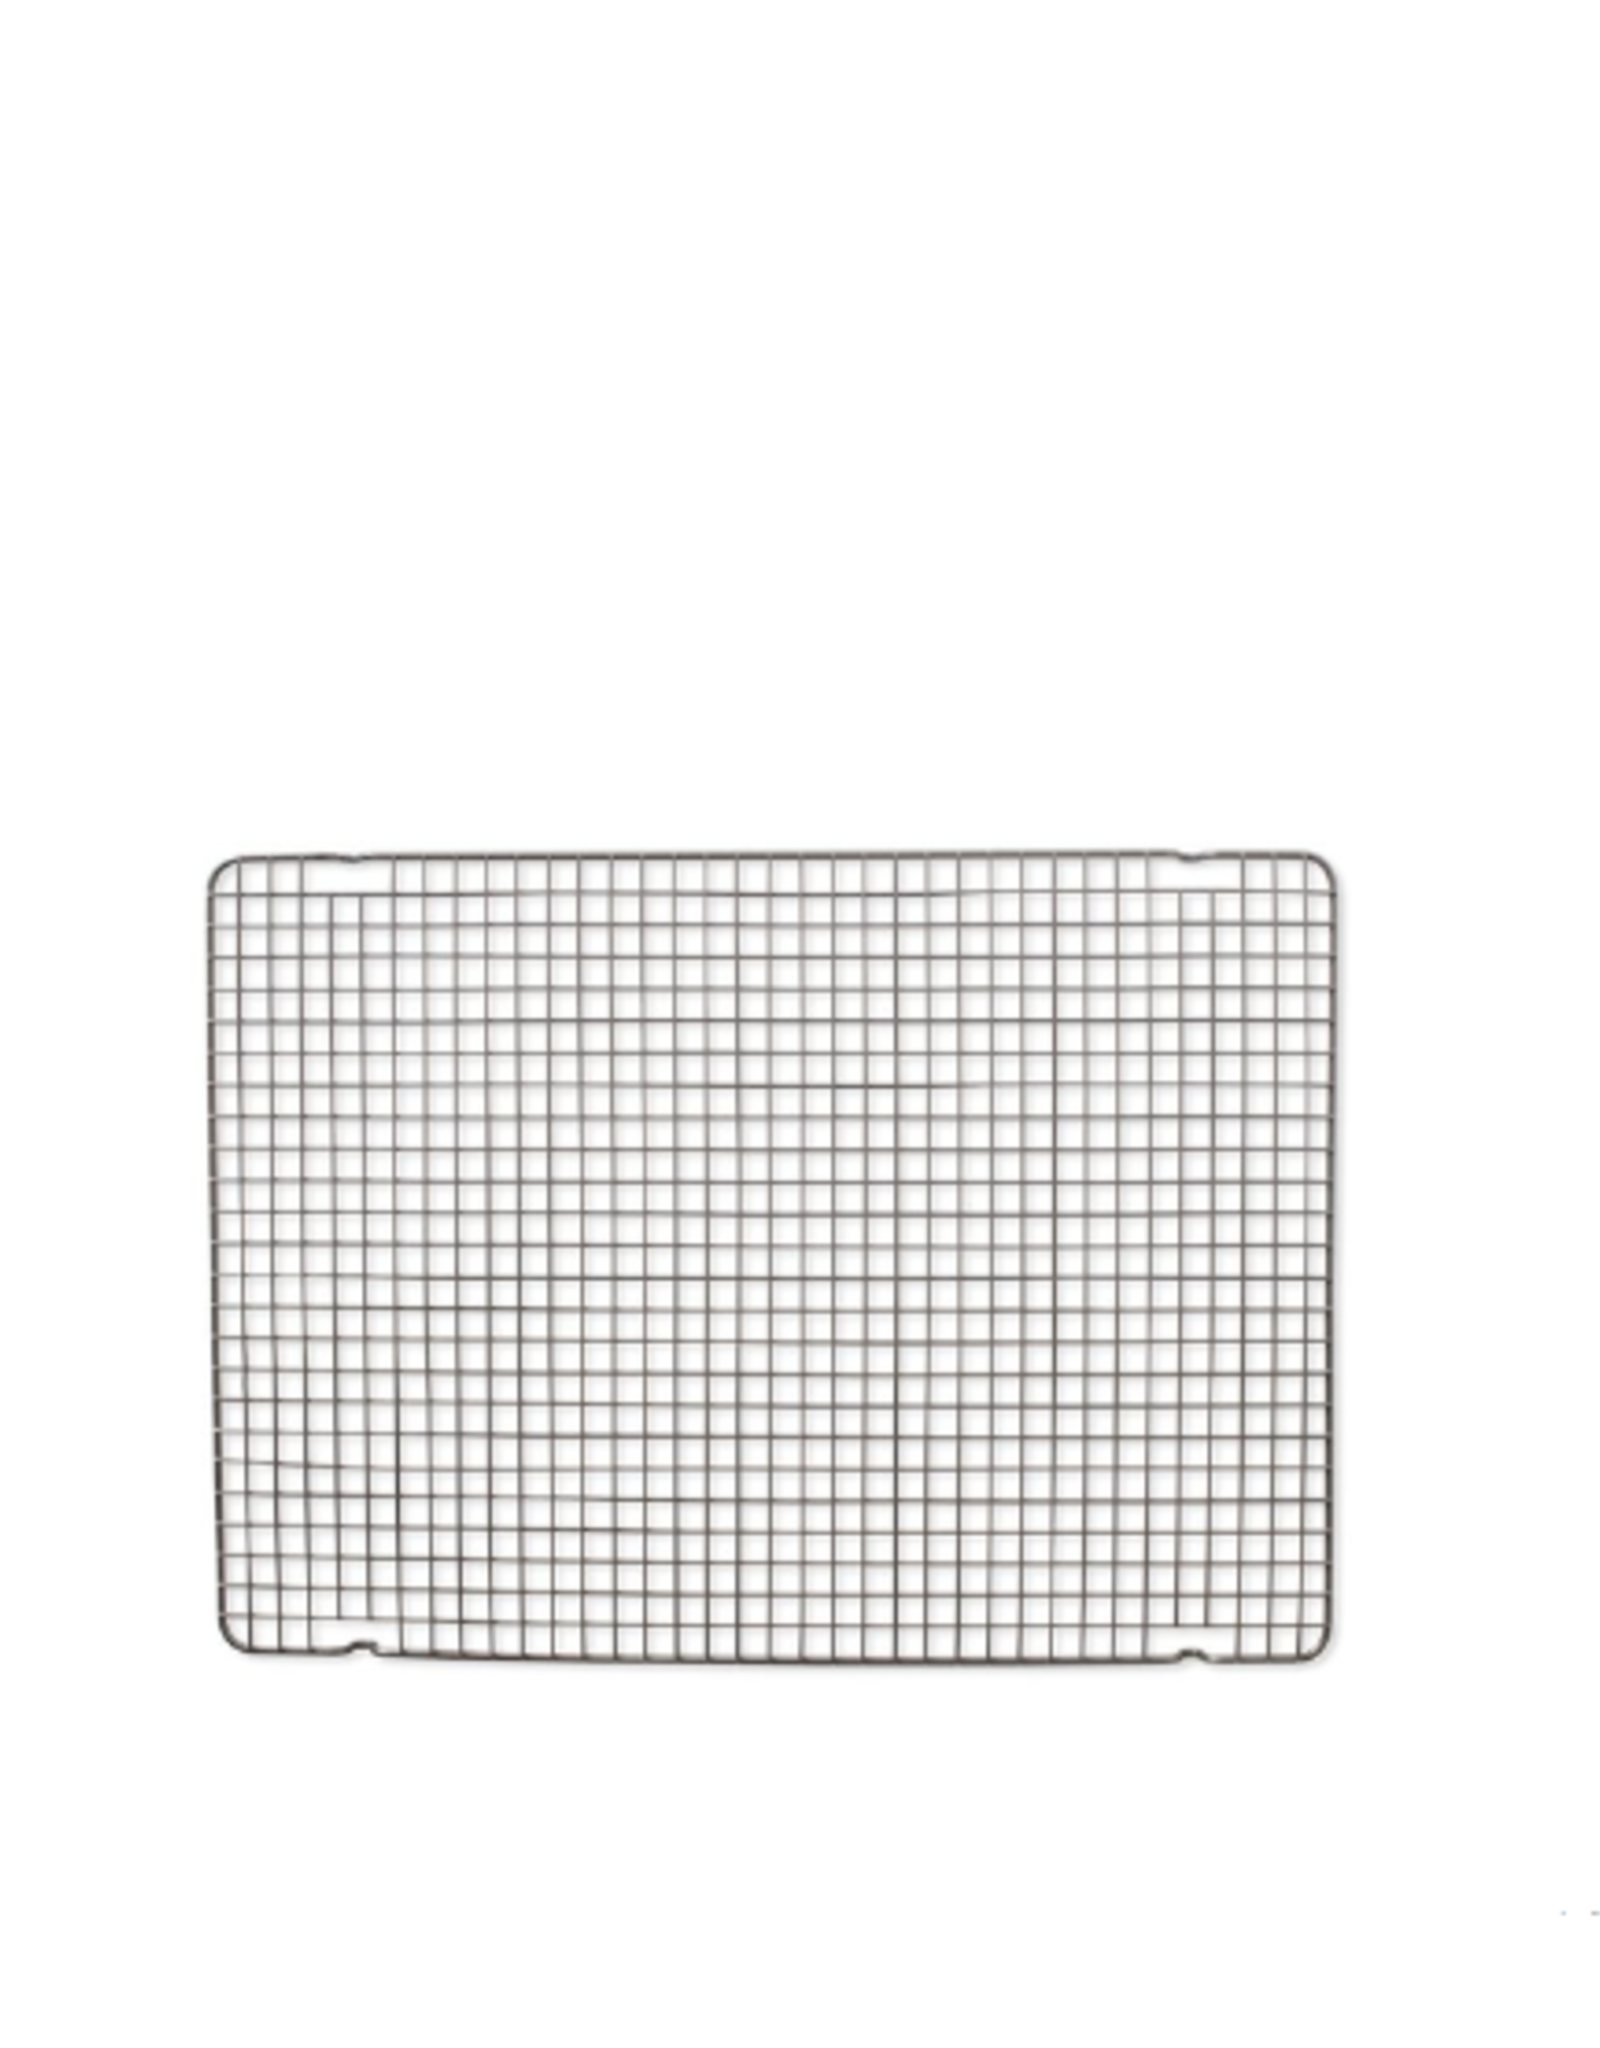 Nordicware Extra Large Cooling Rack, 13.5 x 20